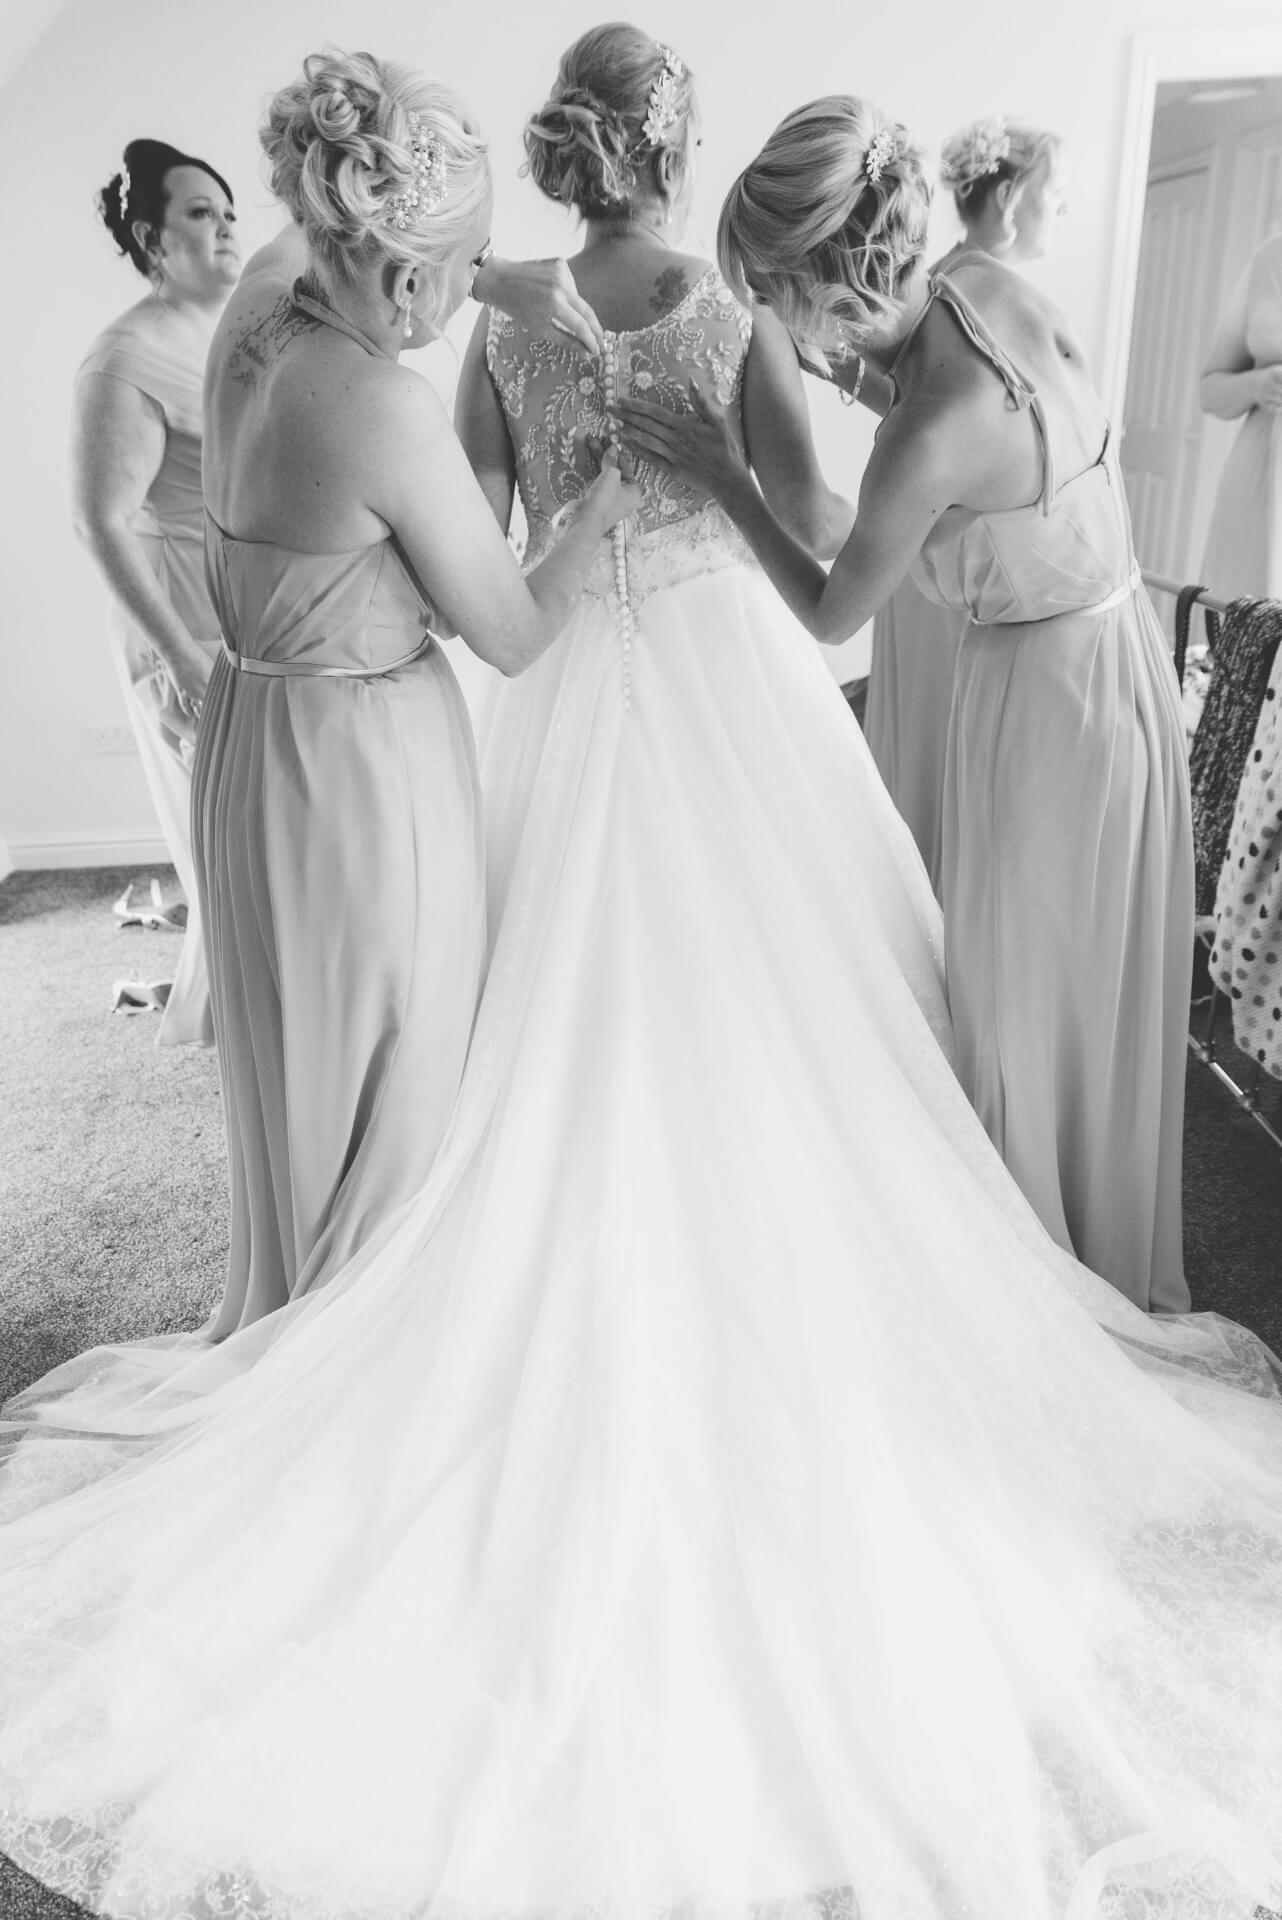 Bride putting on her Wedding Dress - natural wedding photography by Slice of Life Photography